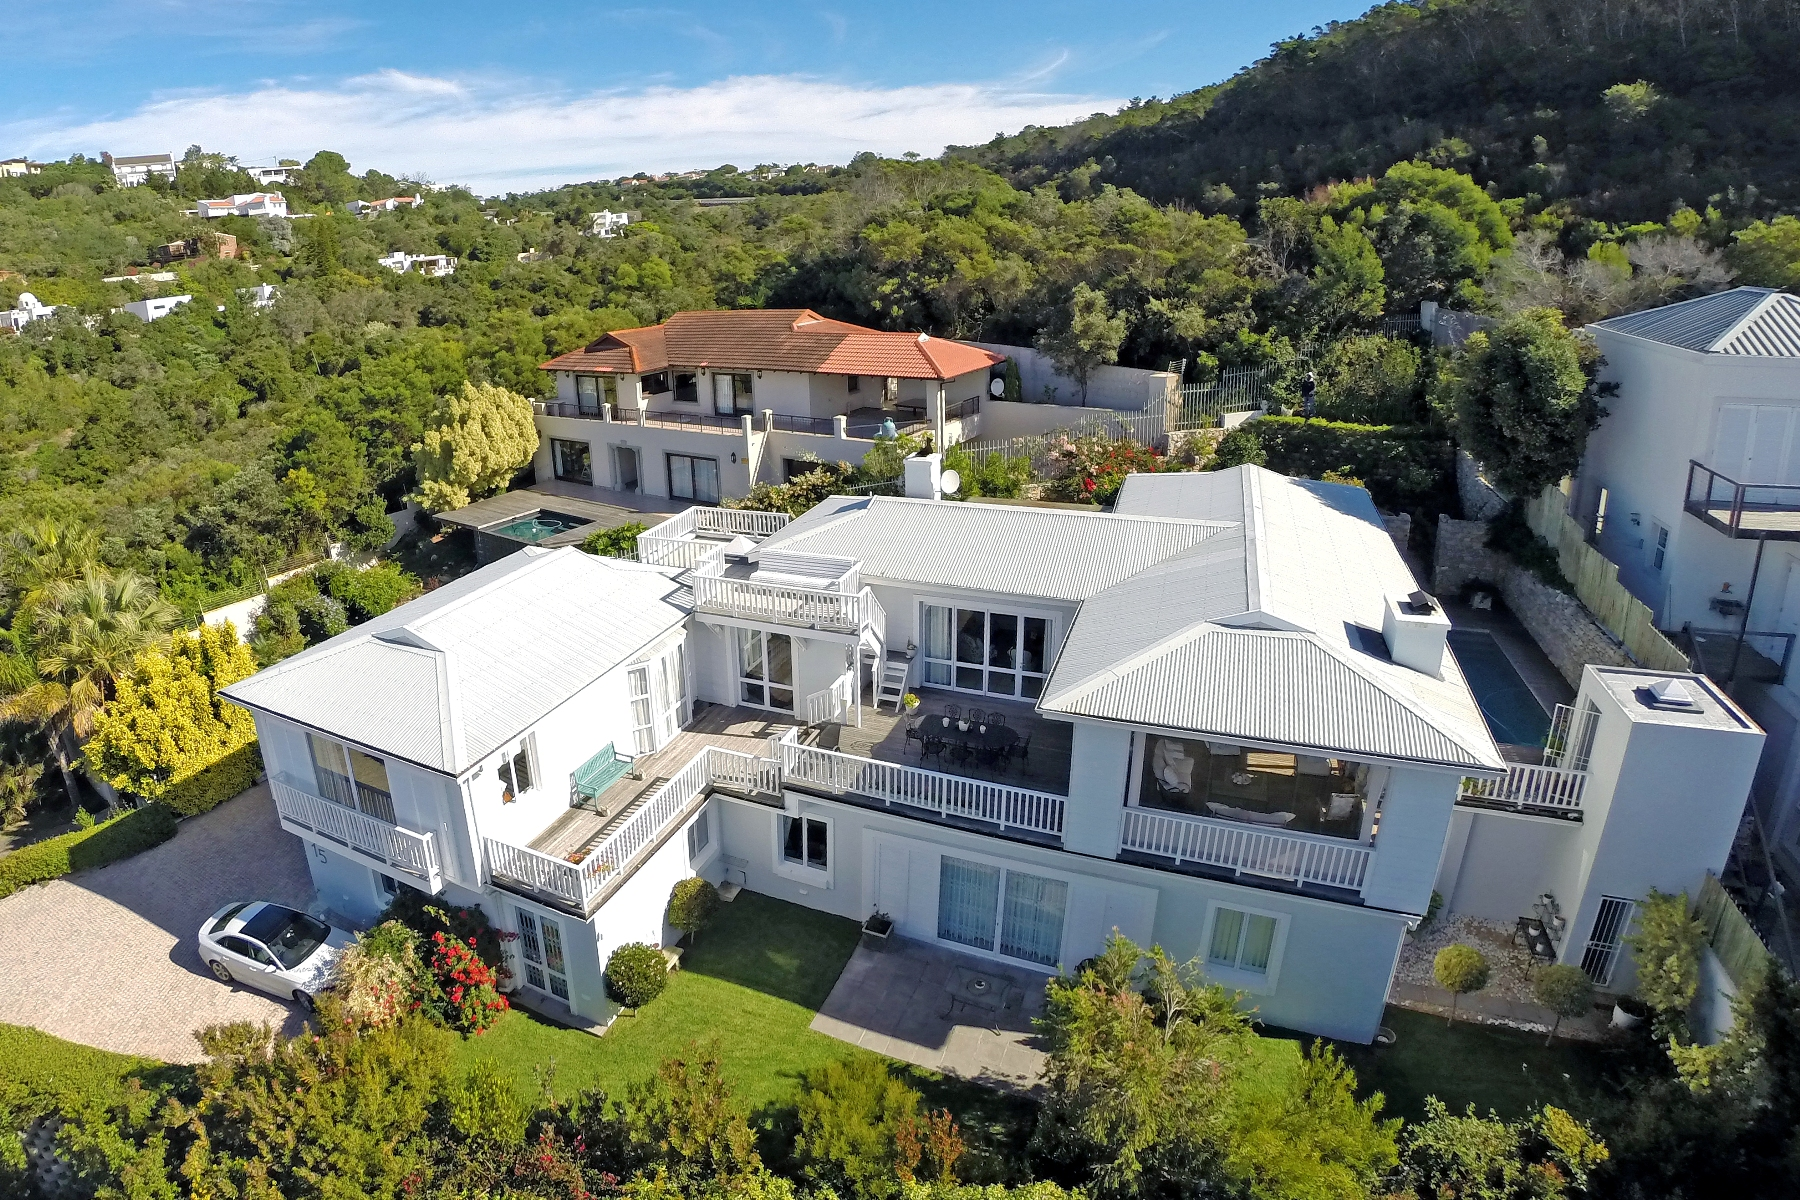 Single Family Home for Sale at Elegant home with a view Plettenberg Bay, Western Cape, 6600 South Africa